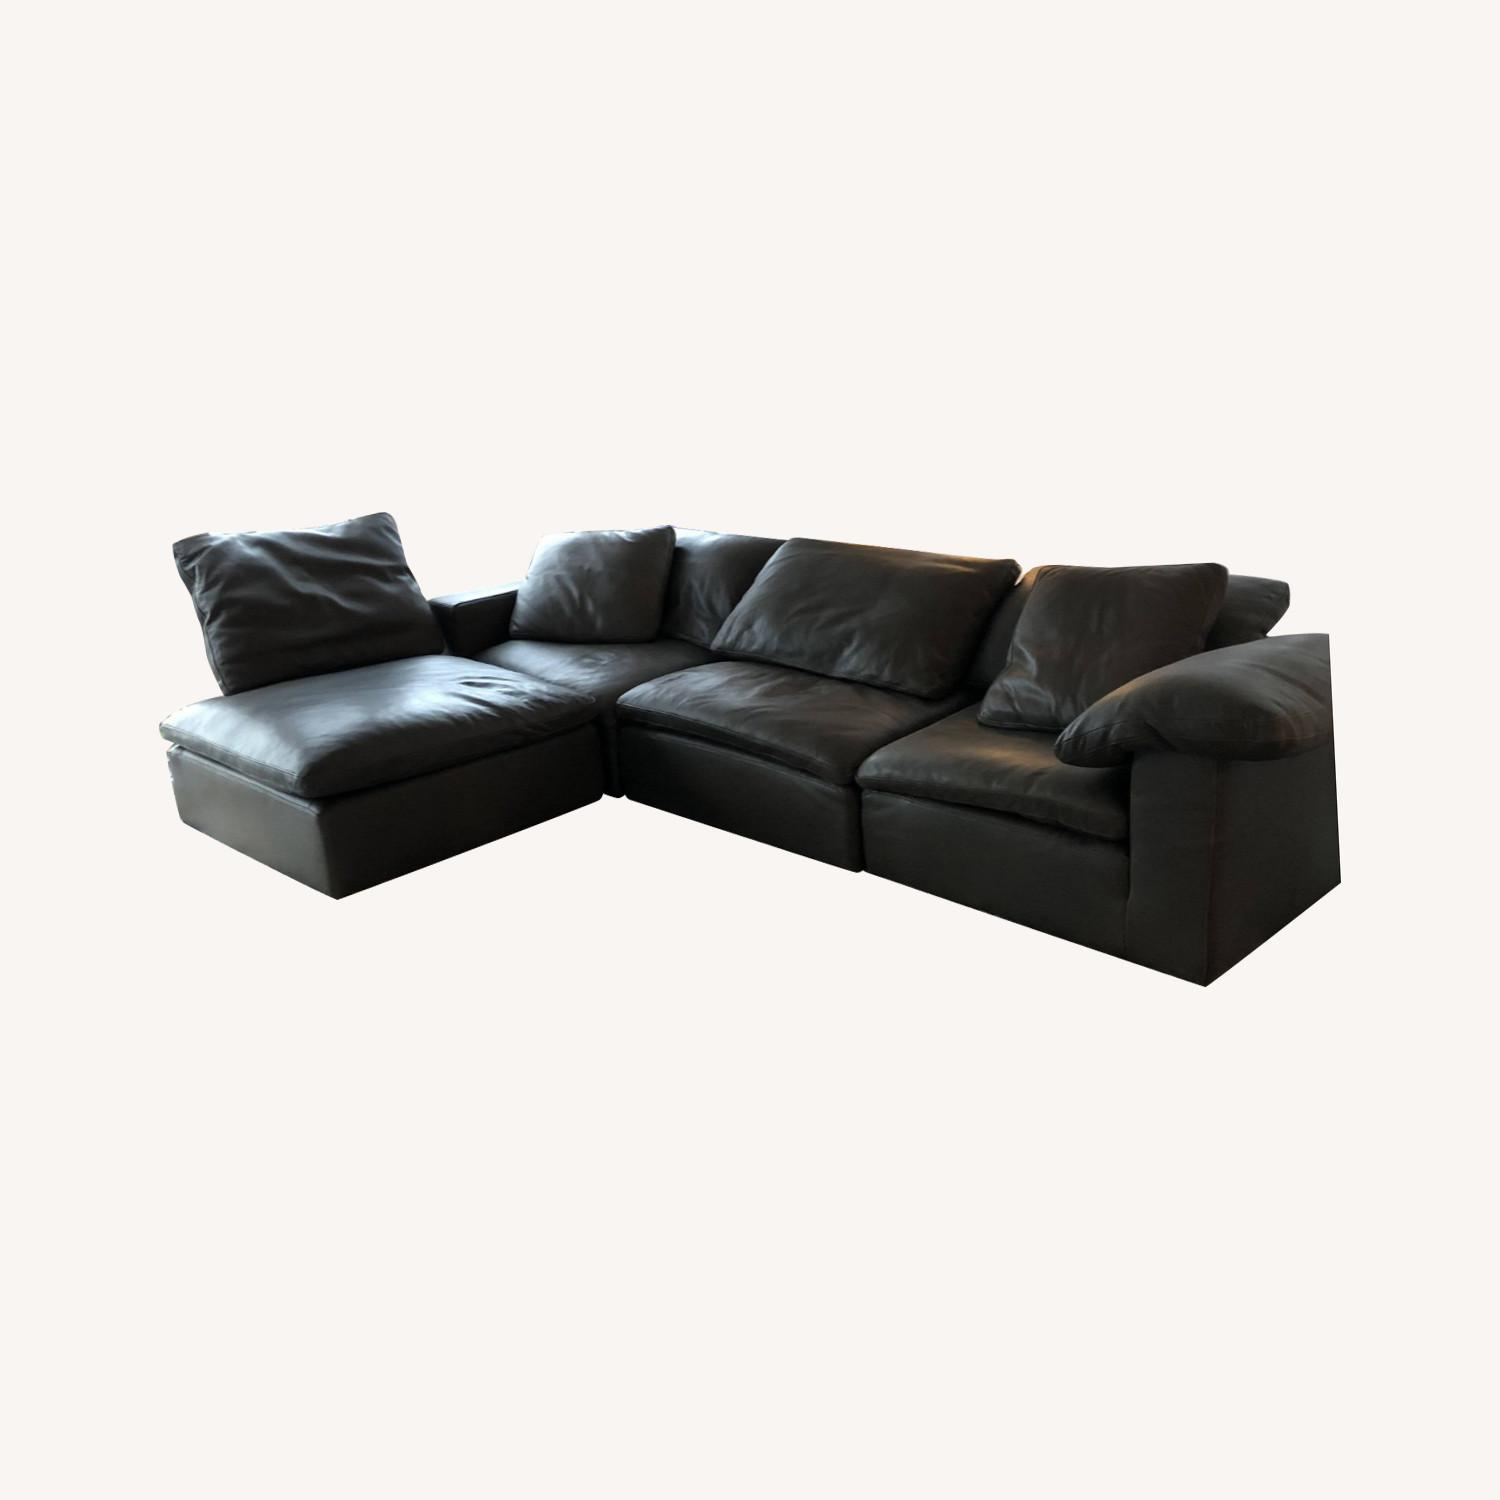 Restoration Hardware Leather Sectional Couch - image-0